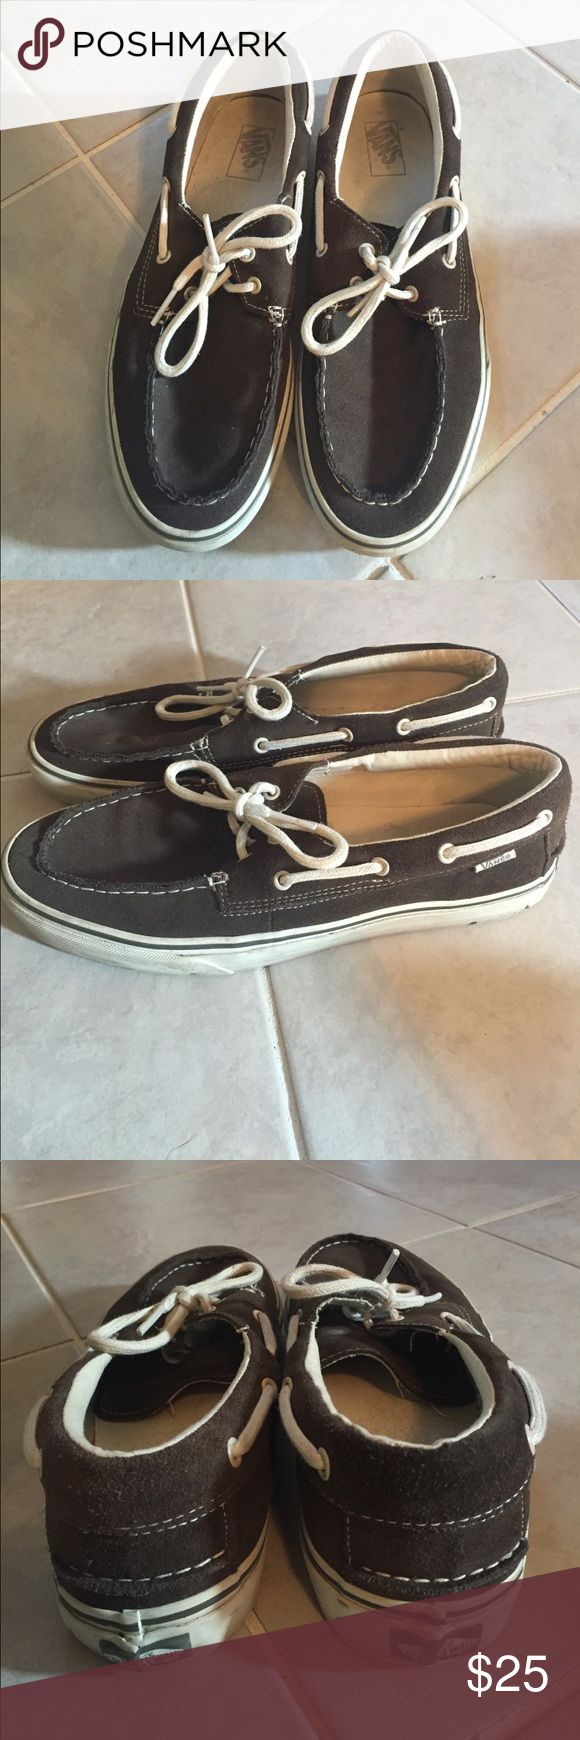 Vans Boat shoes Men's boat shoes by Vans. Casual and comfortable. Color matches with several outfits! Vans Shoes Boat Shoes